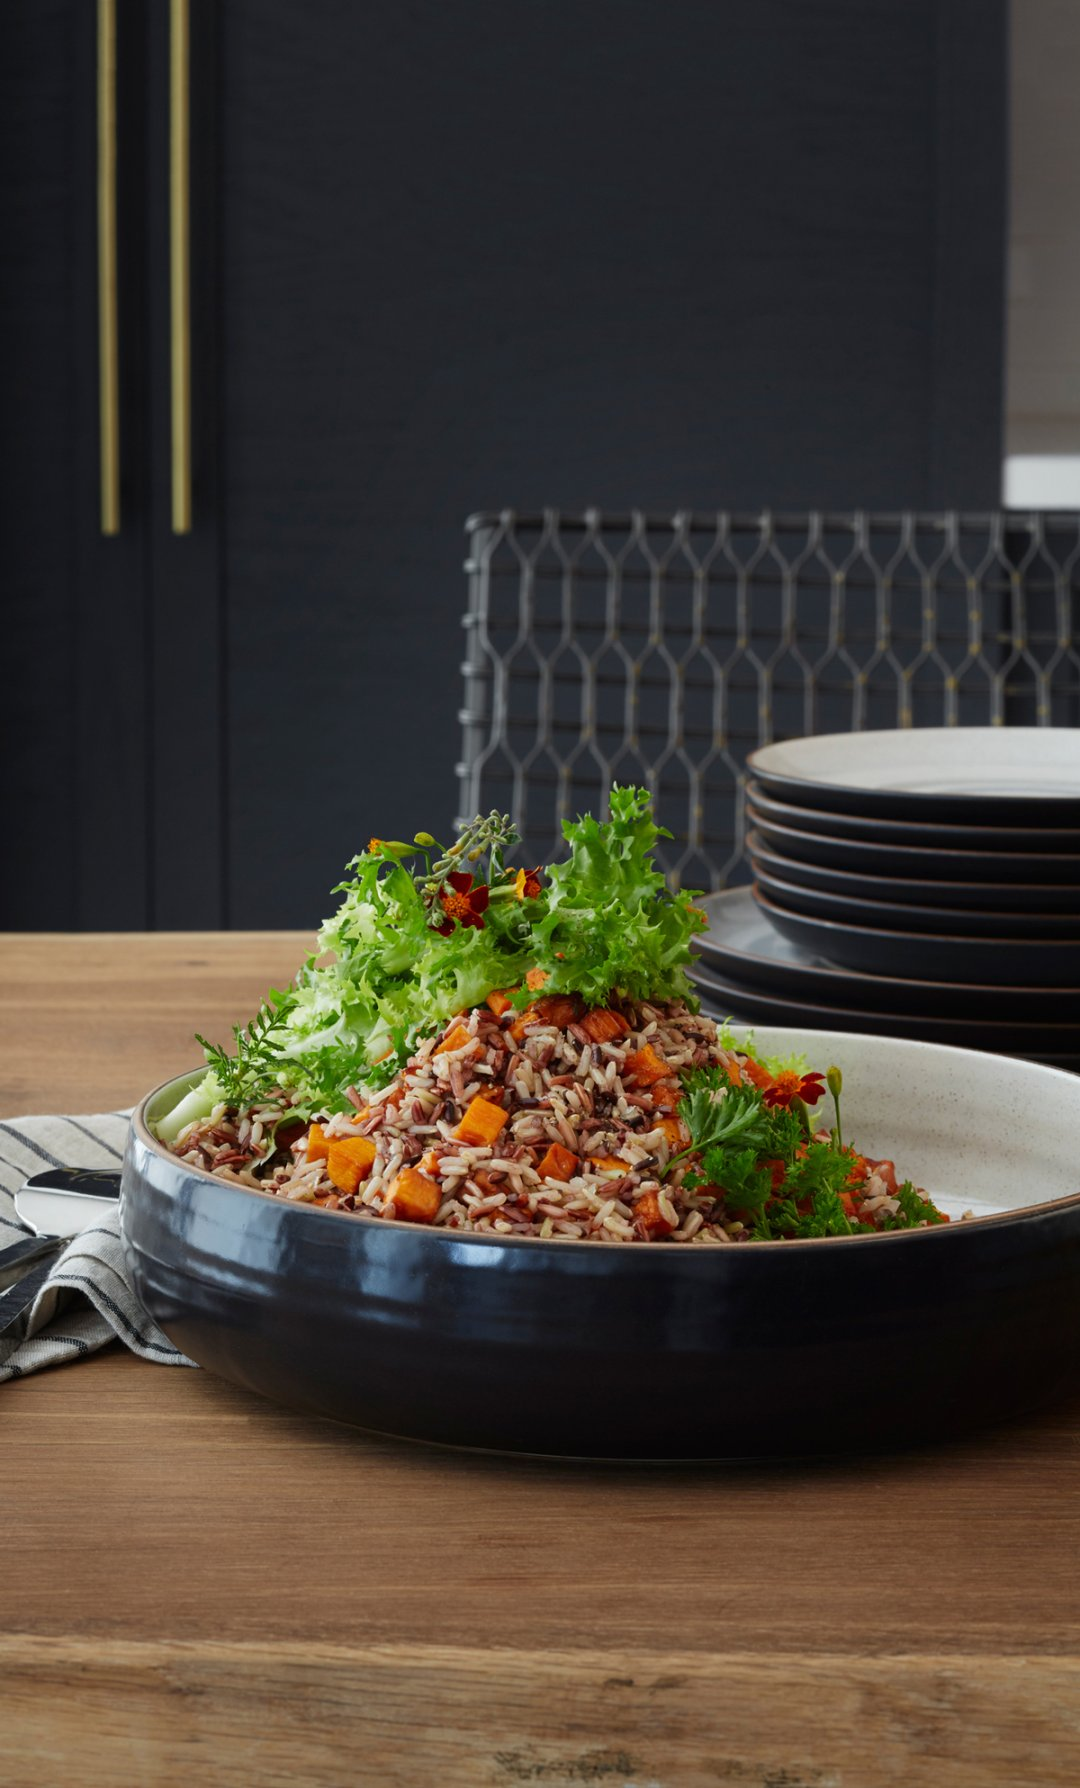 Wild Rice bowl served on table